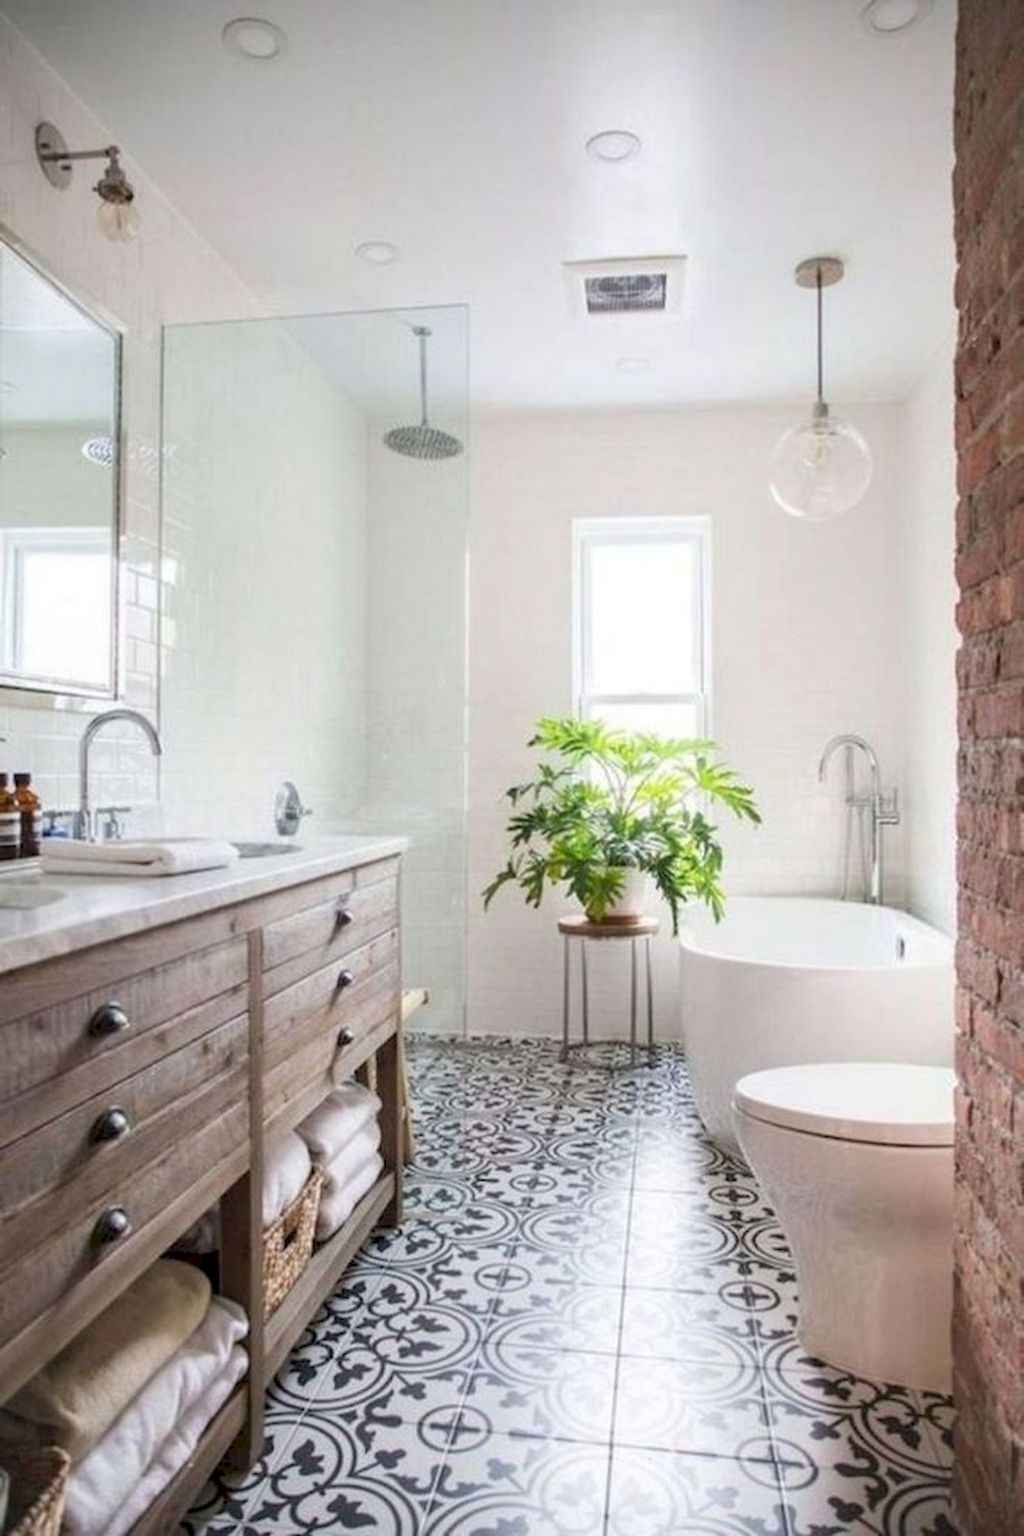 15 modern farmhouse master bathroom remodel ideas in 2020 | diy bathroom remodel, modern